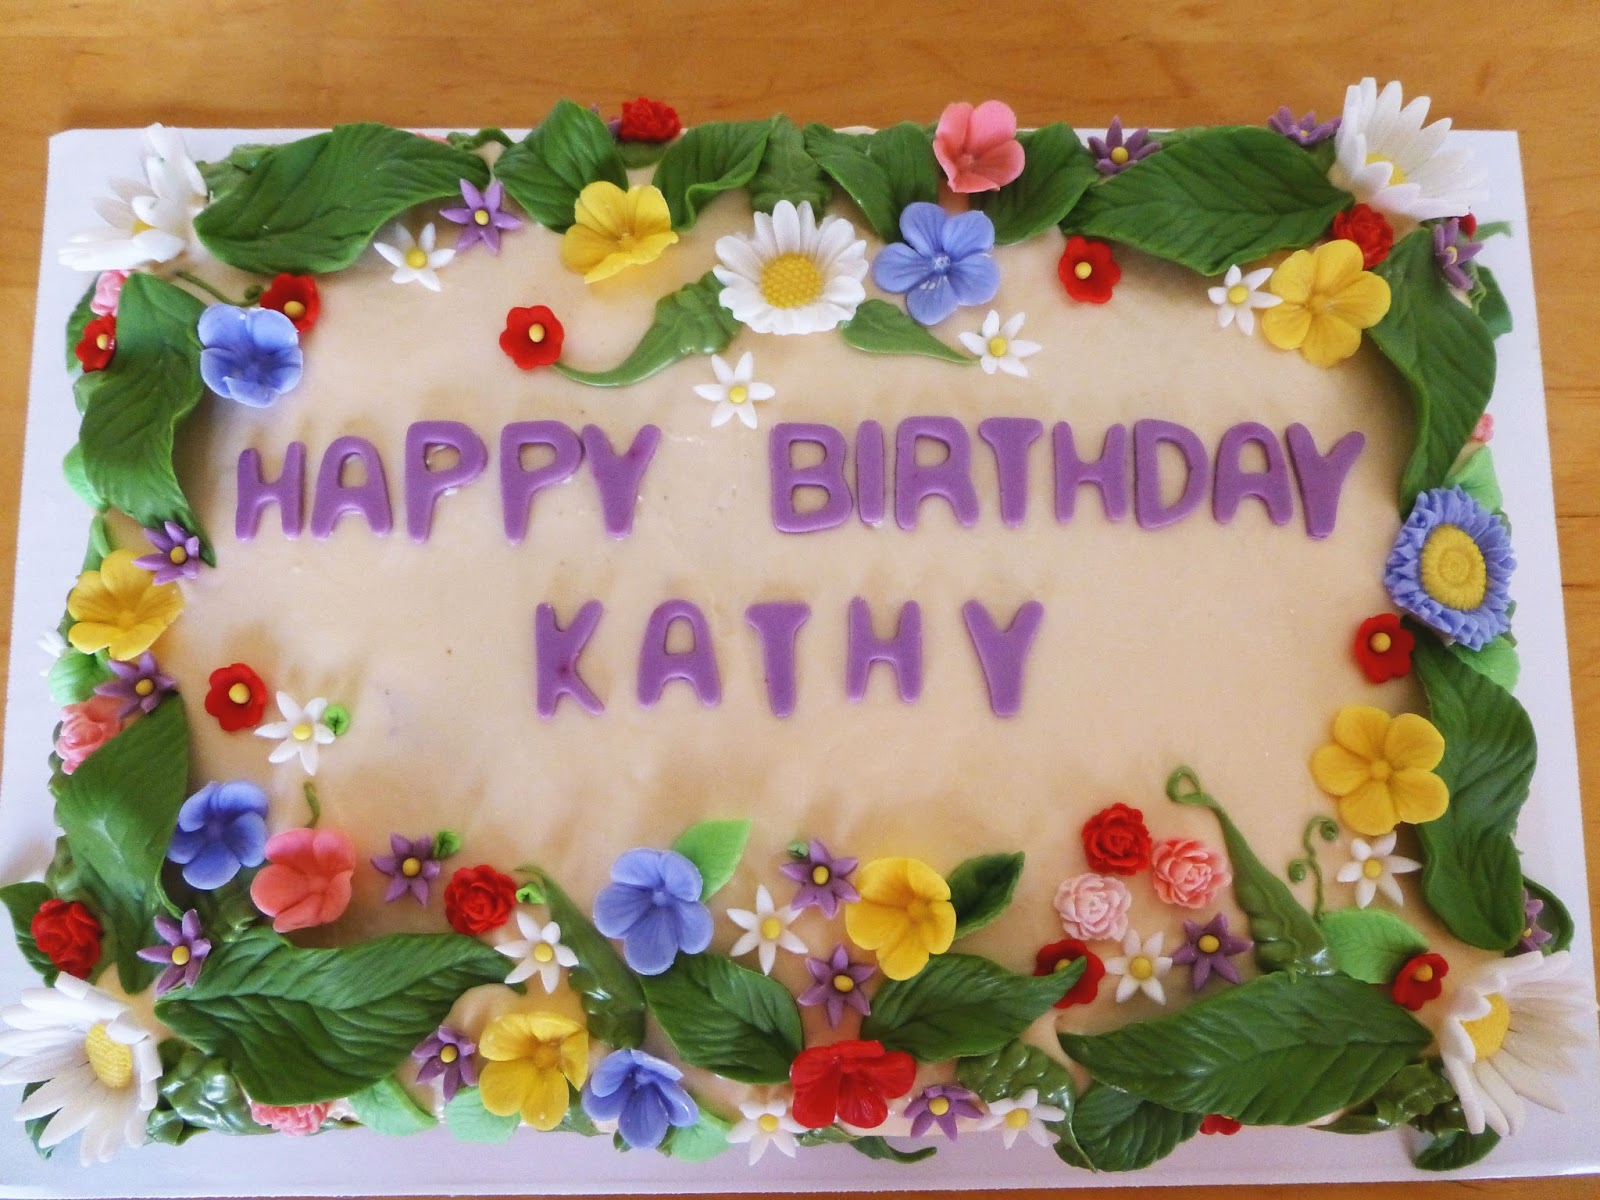 happy birthday kathy cake ; Kathy%252527s%252Bbirthday%252Bcakes%252B%25252817%252529